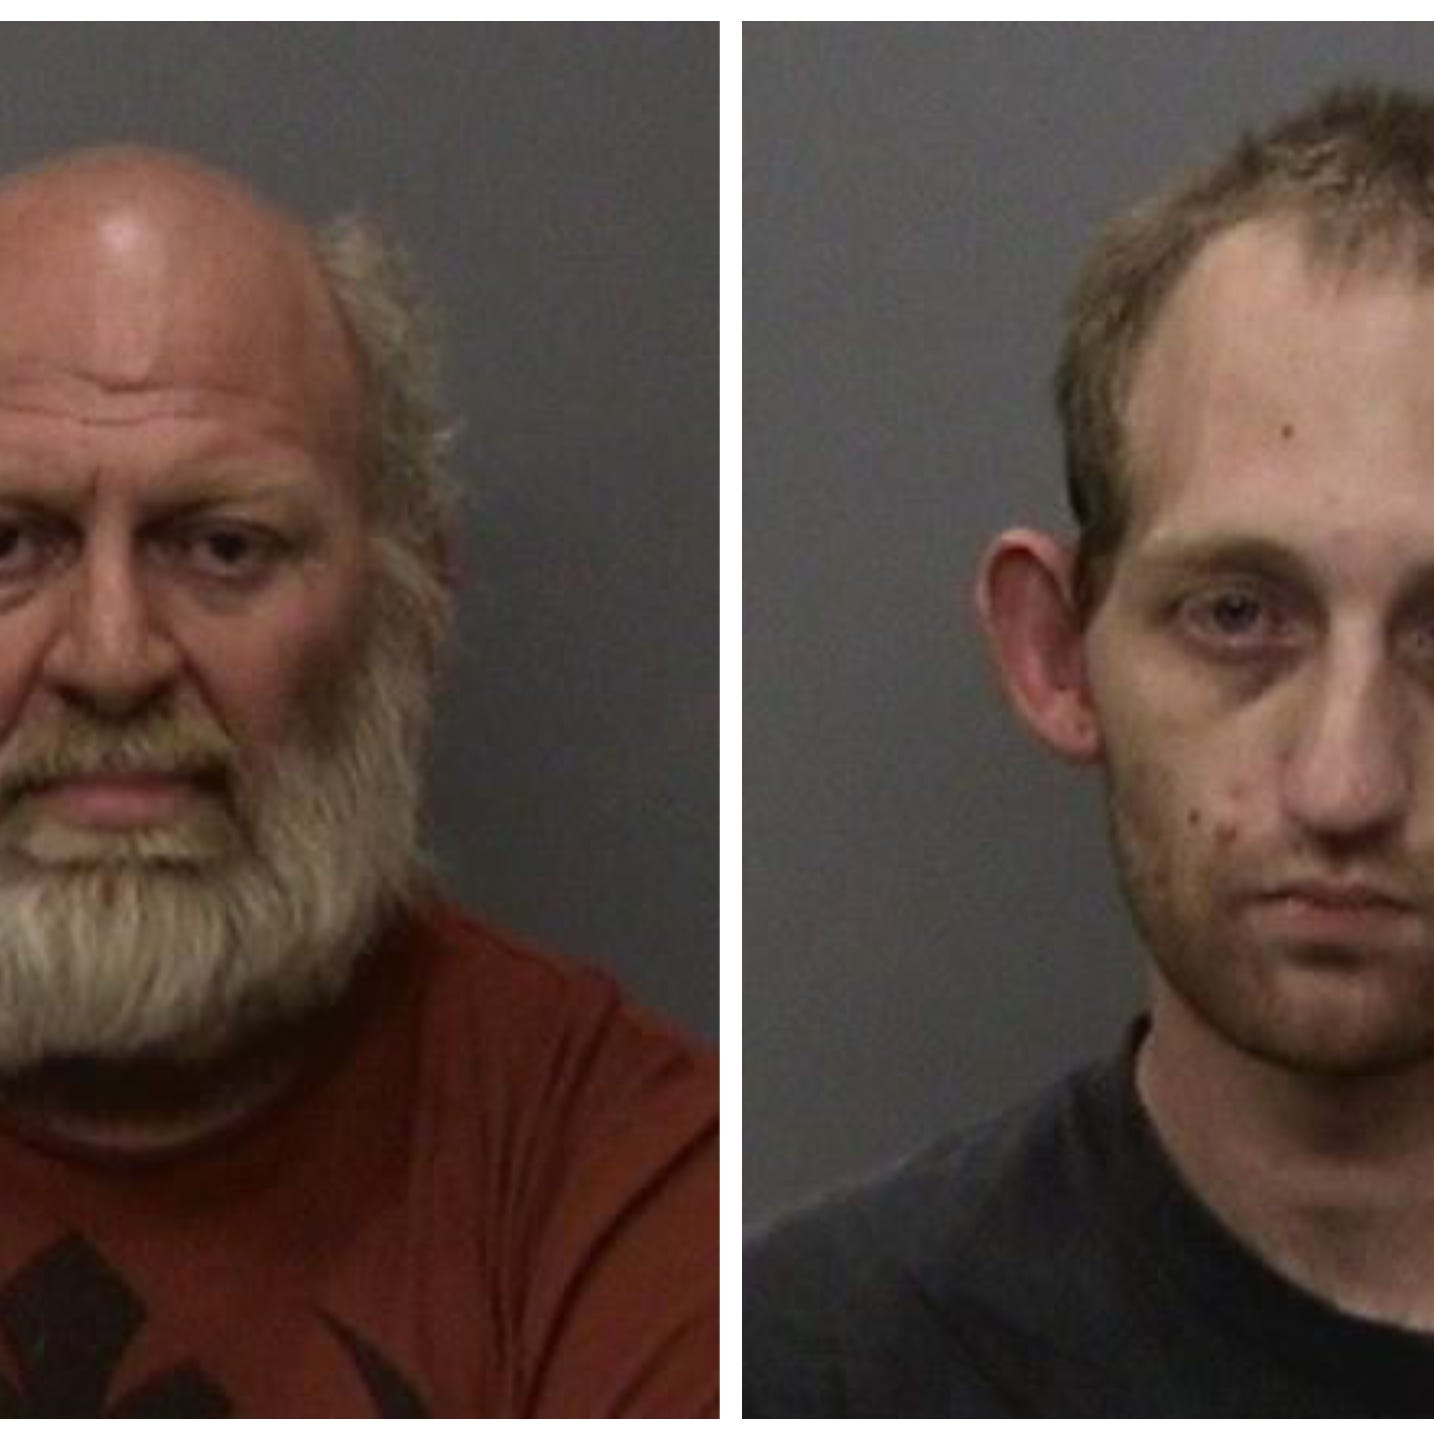 Gunshot fired in air to stop fight leads to arrest of father, son on drug-related charges